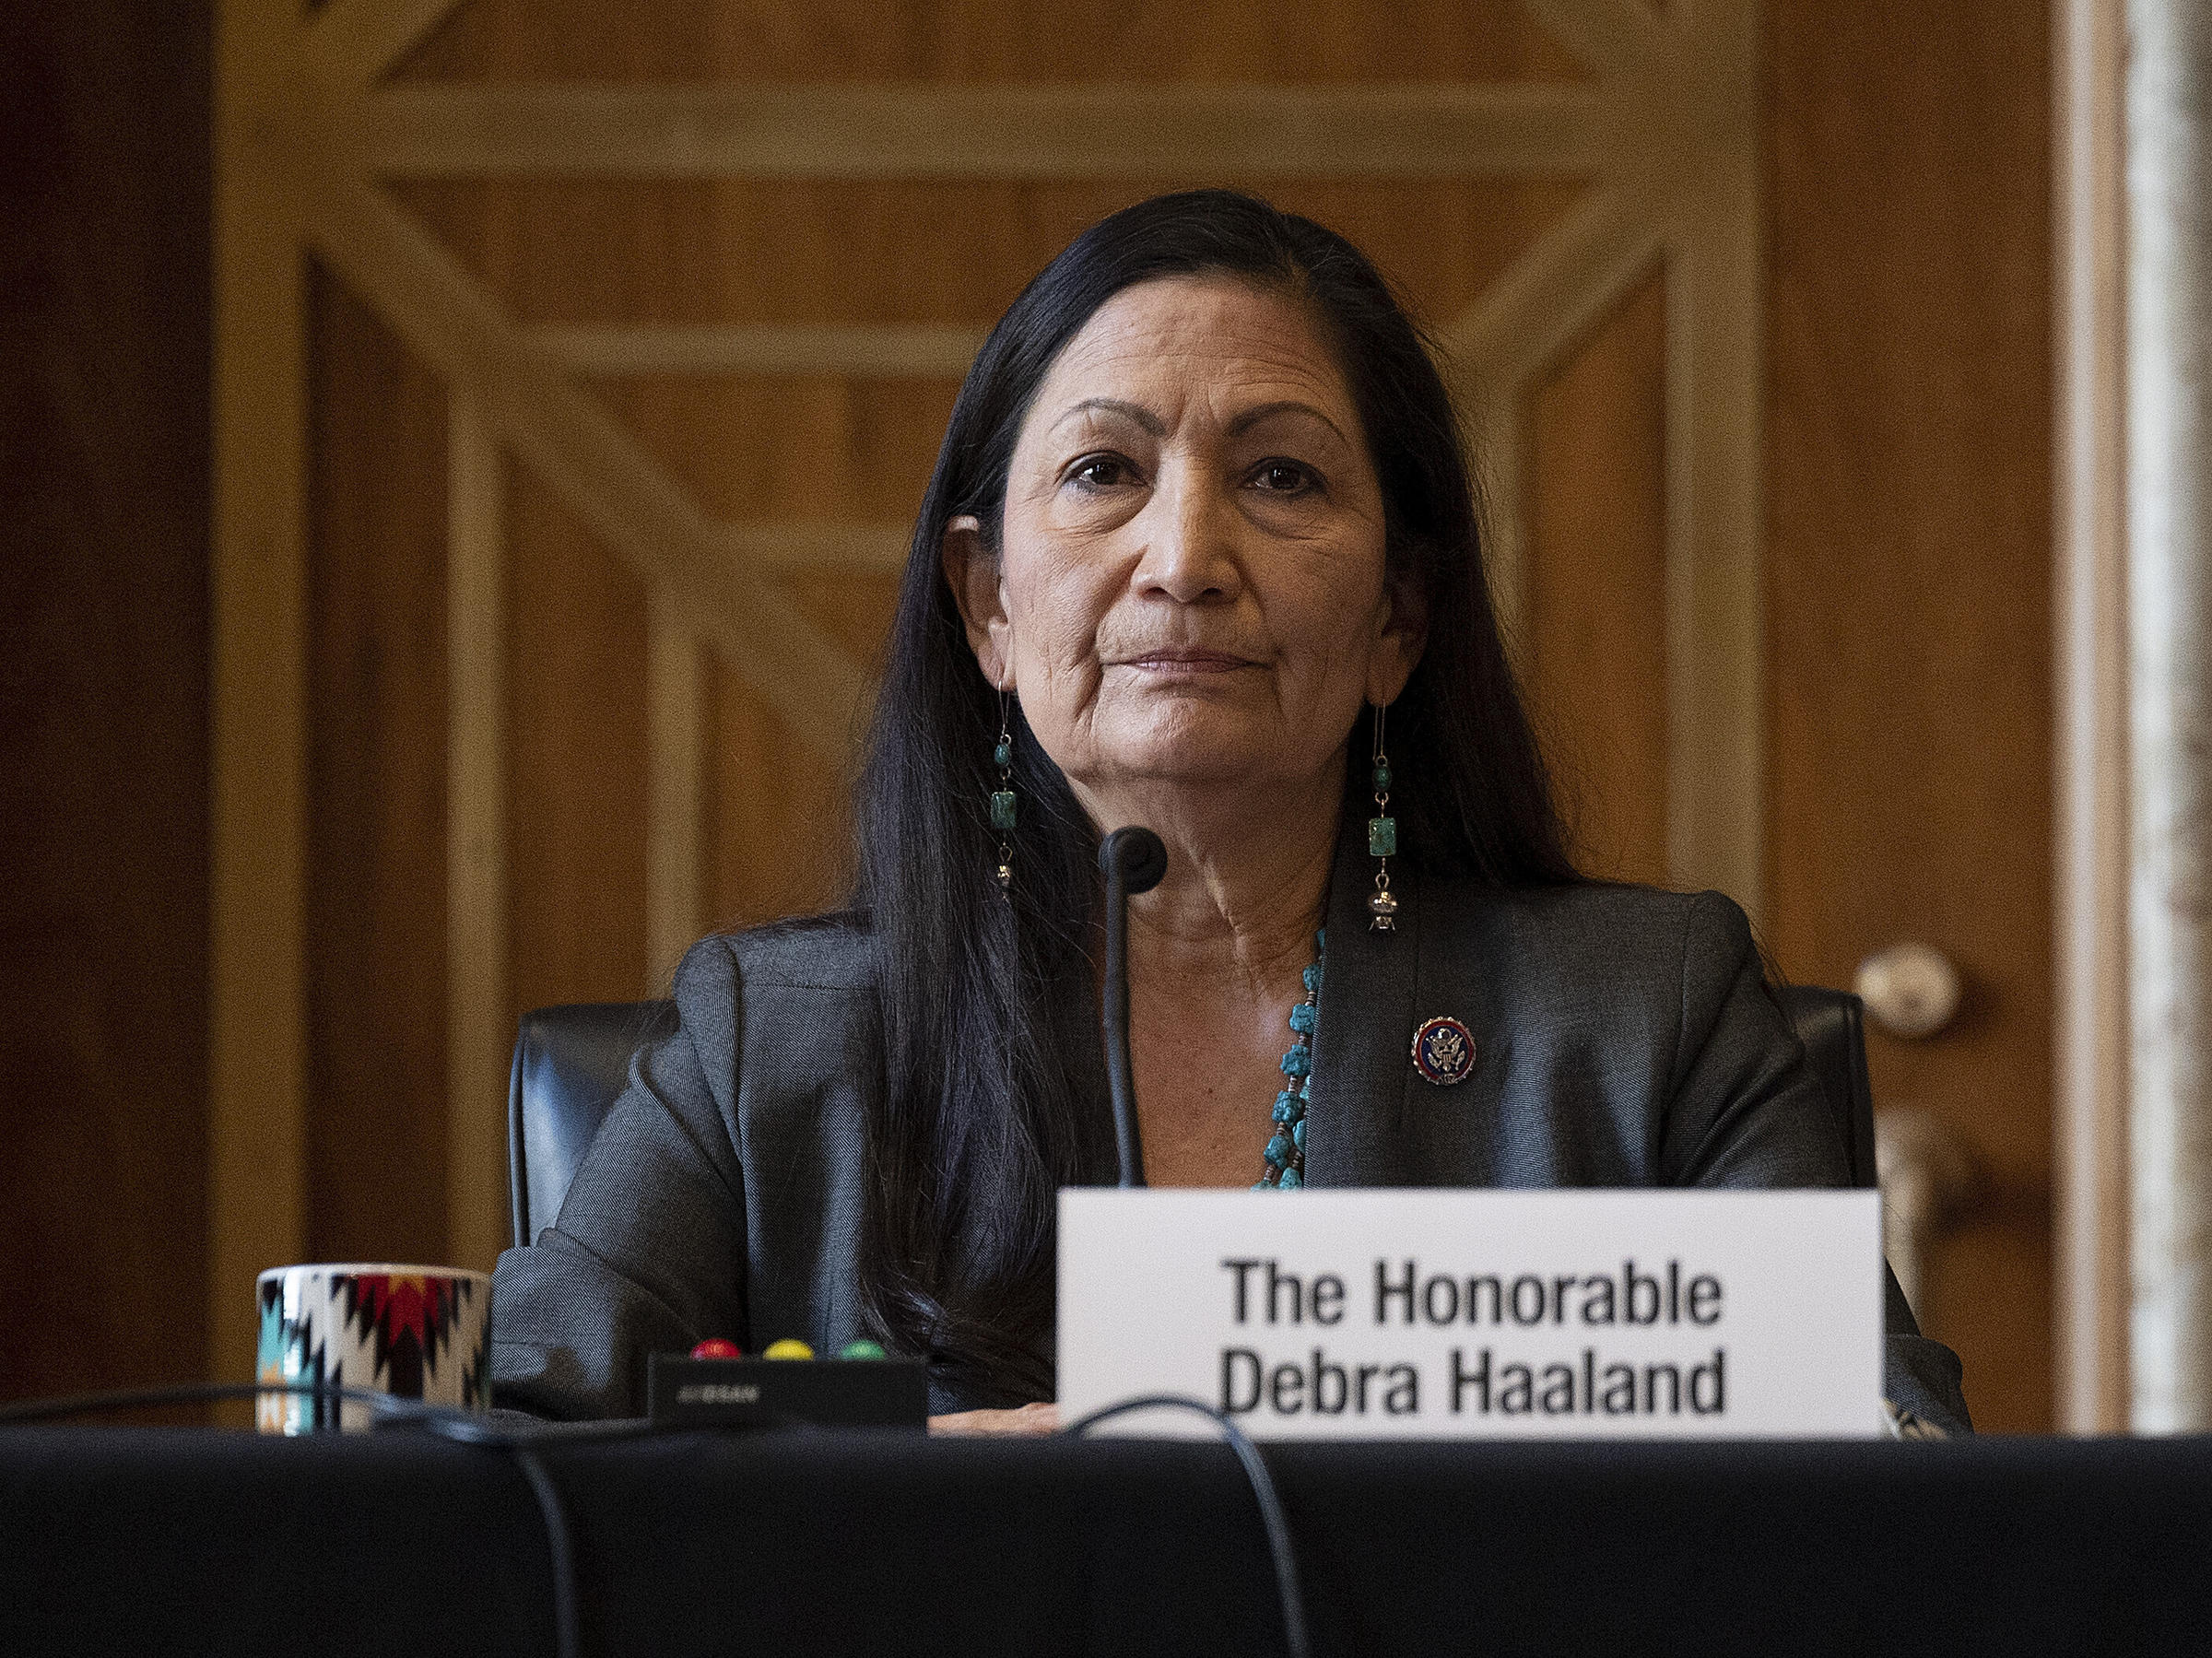 Haaland confirmation hearings wrap up, no vote yet